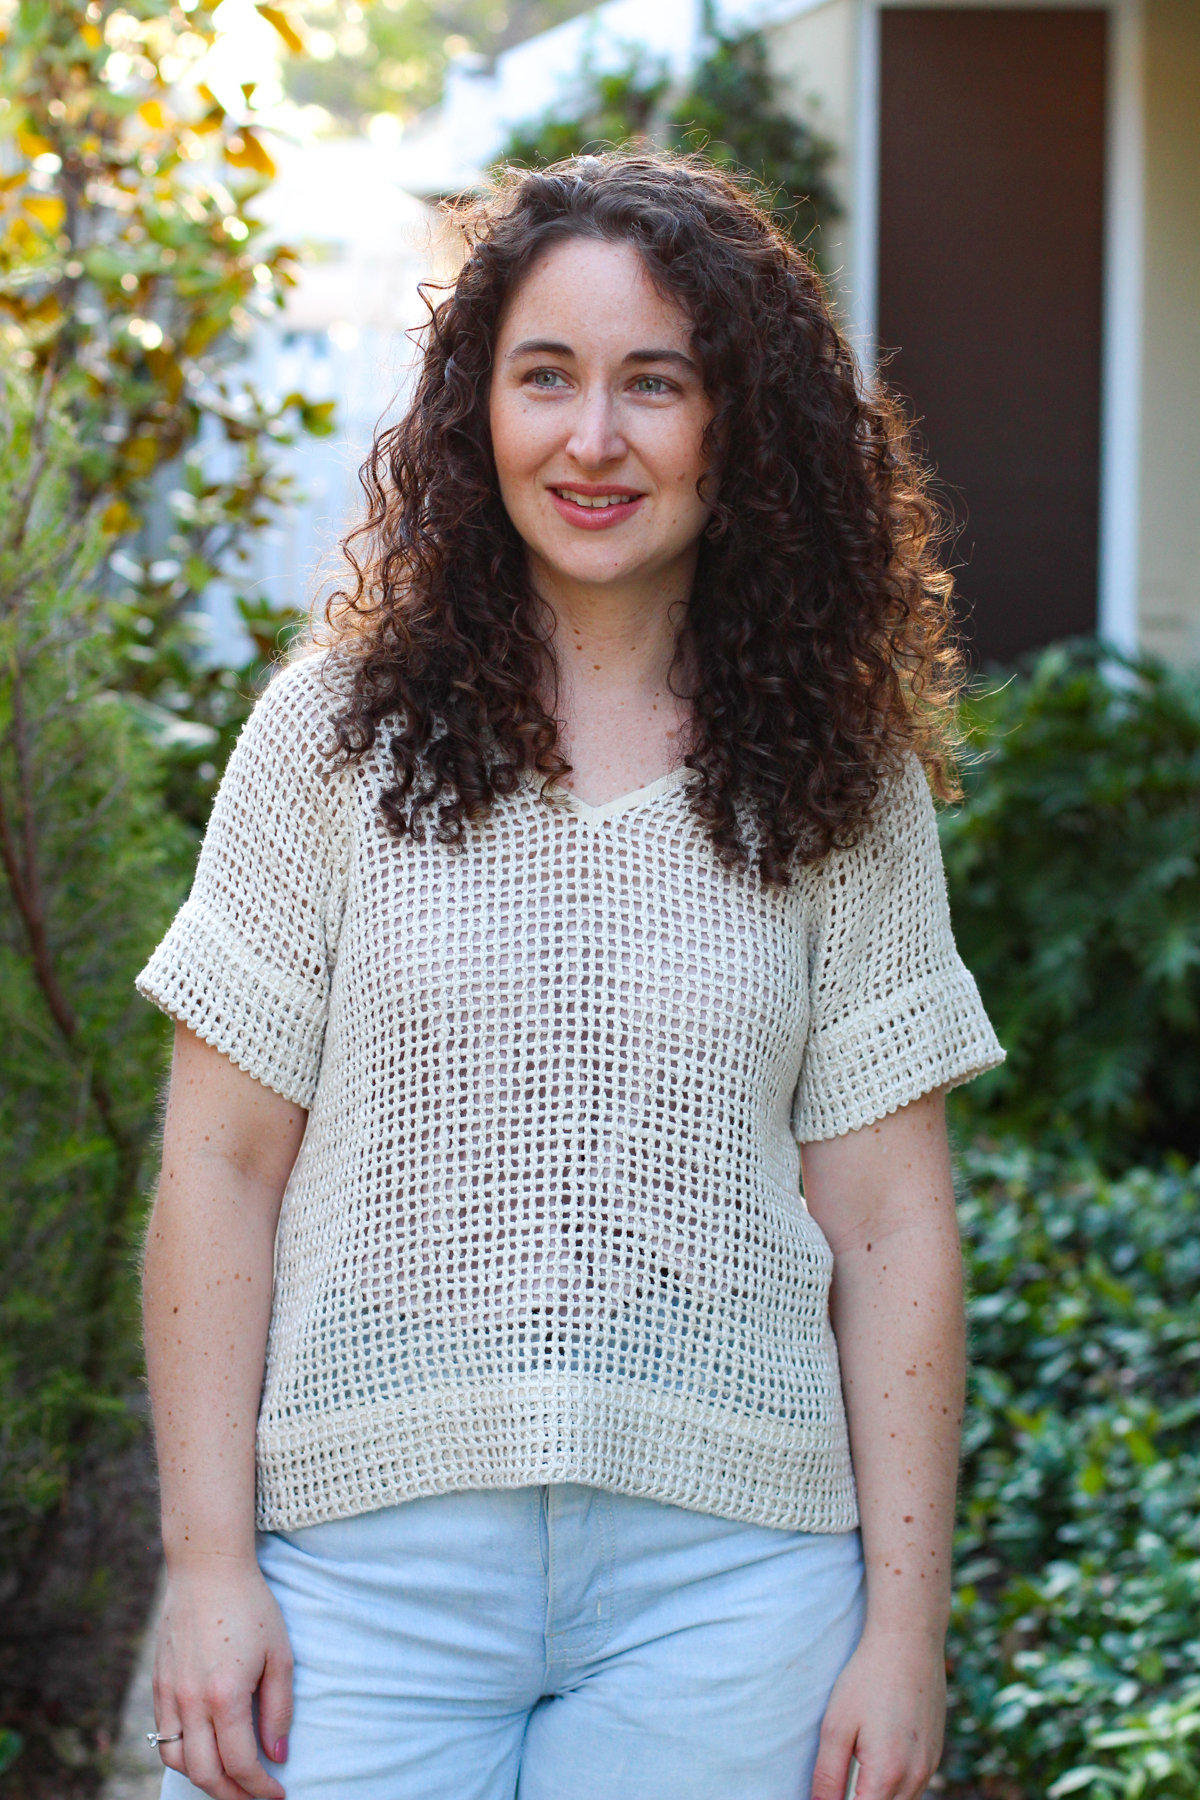 Sewing a raw silk open weave River top! Megan Nielsen Design Diary